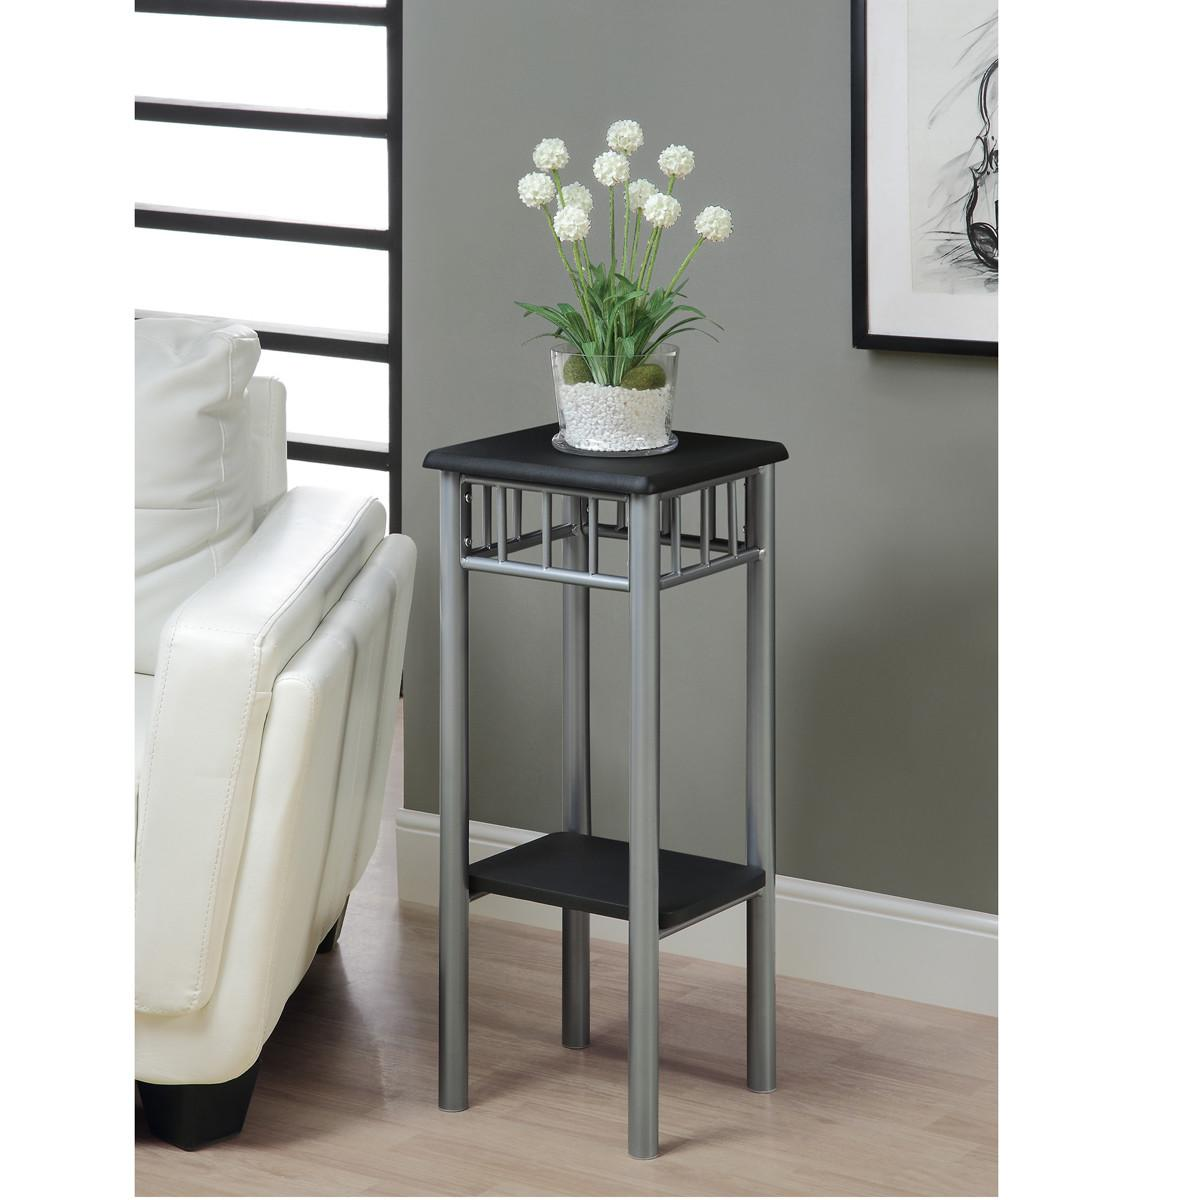 Skye Modern Plant Stand Black Shop Accent Table